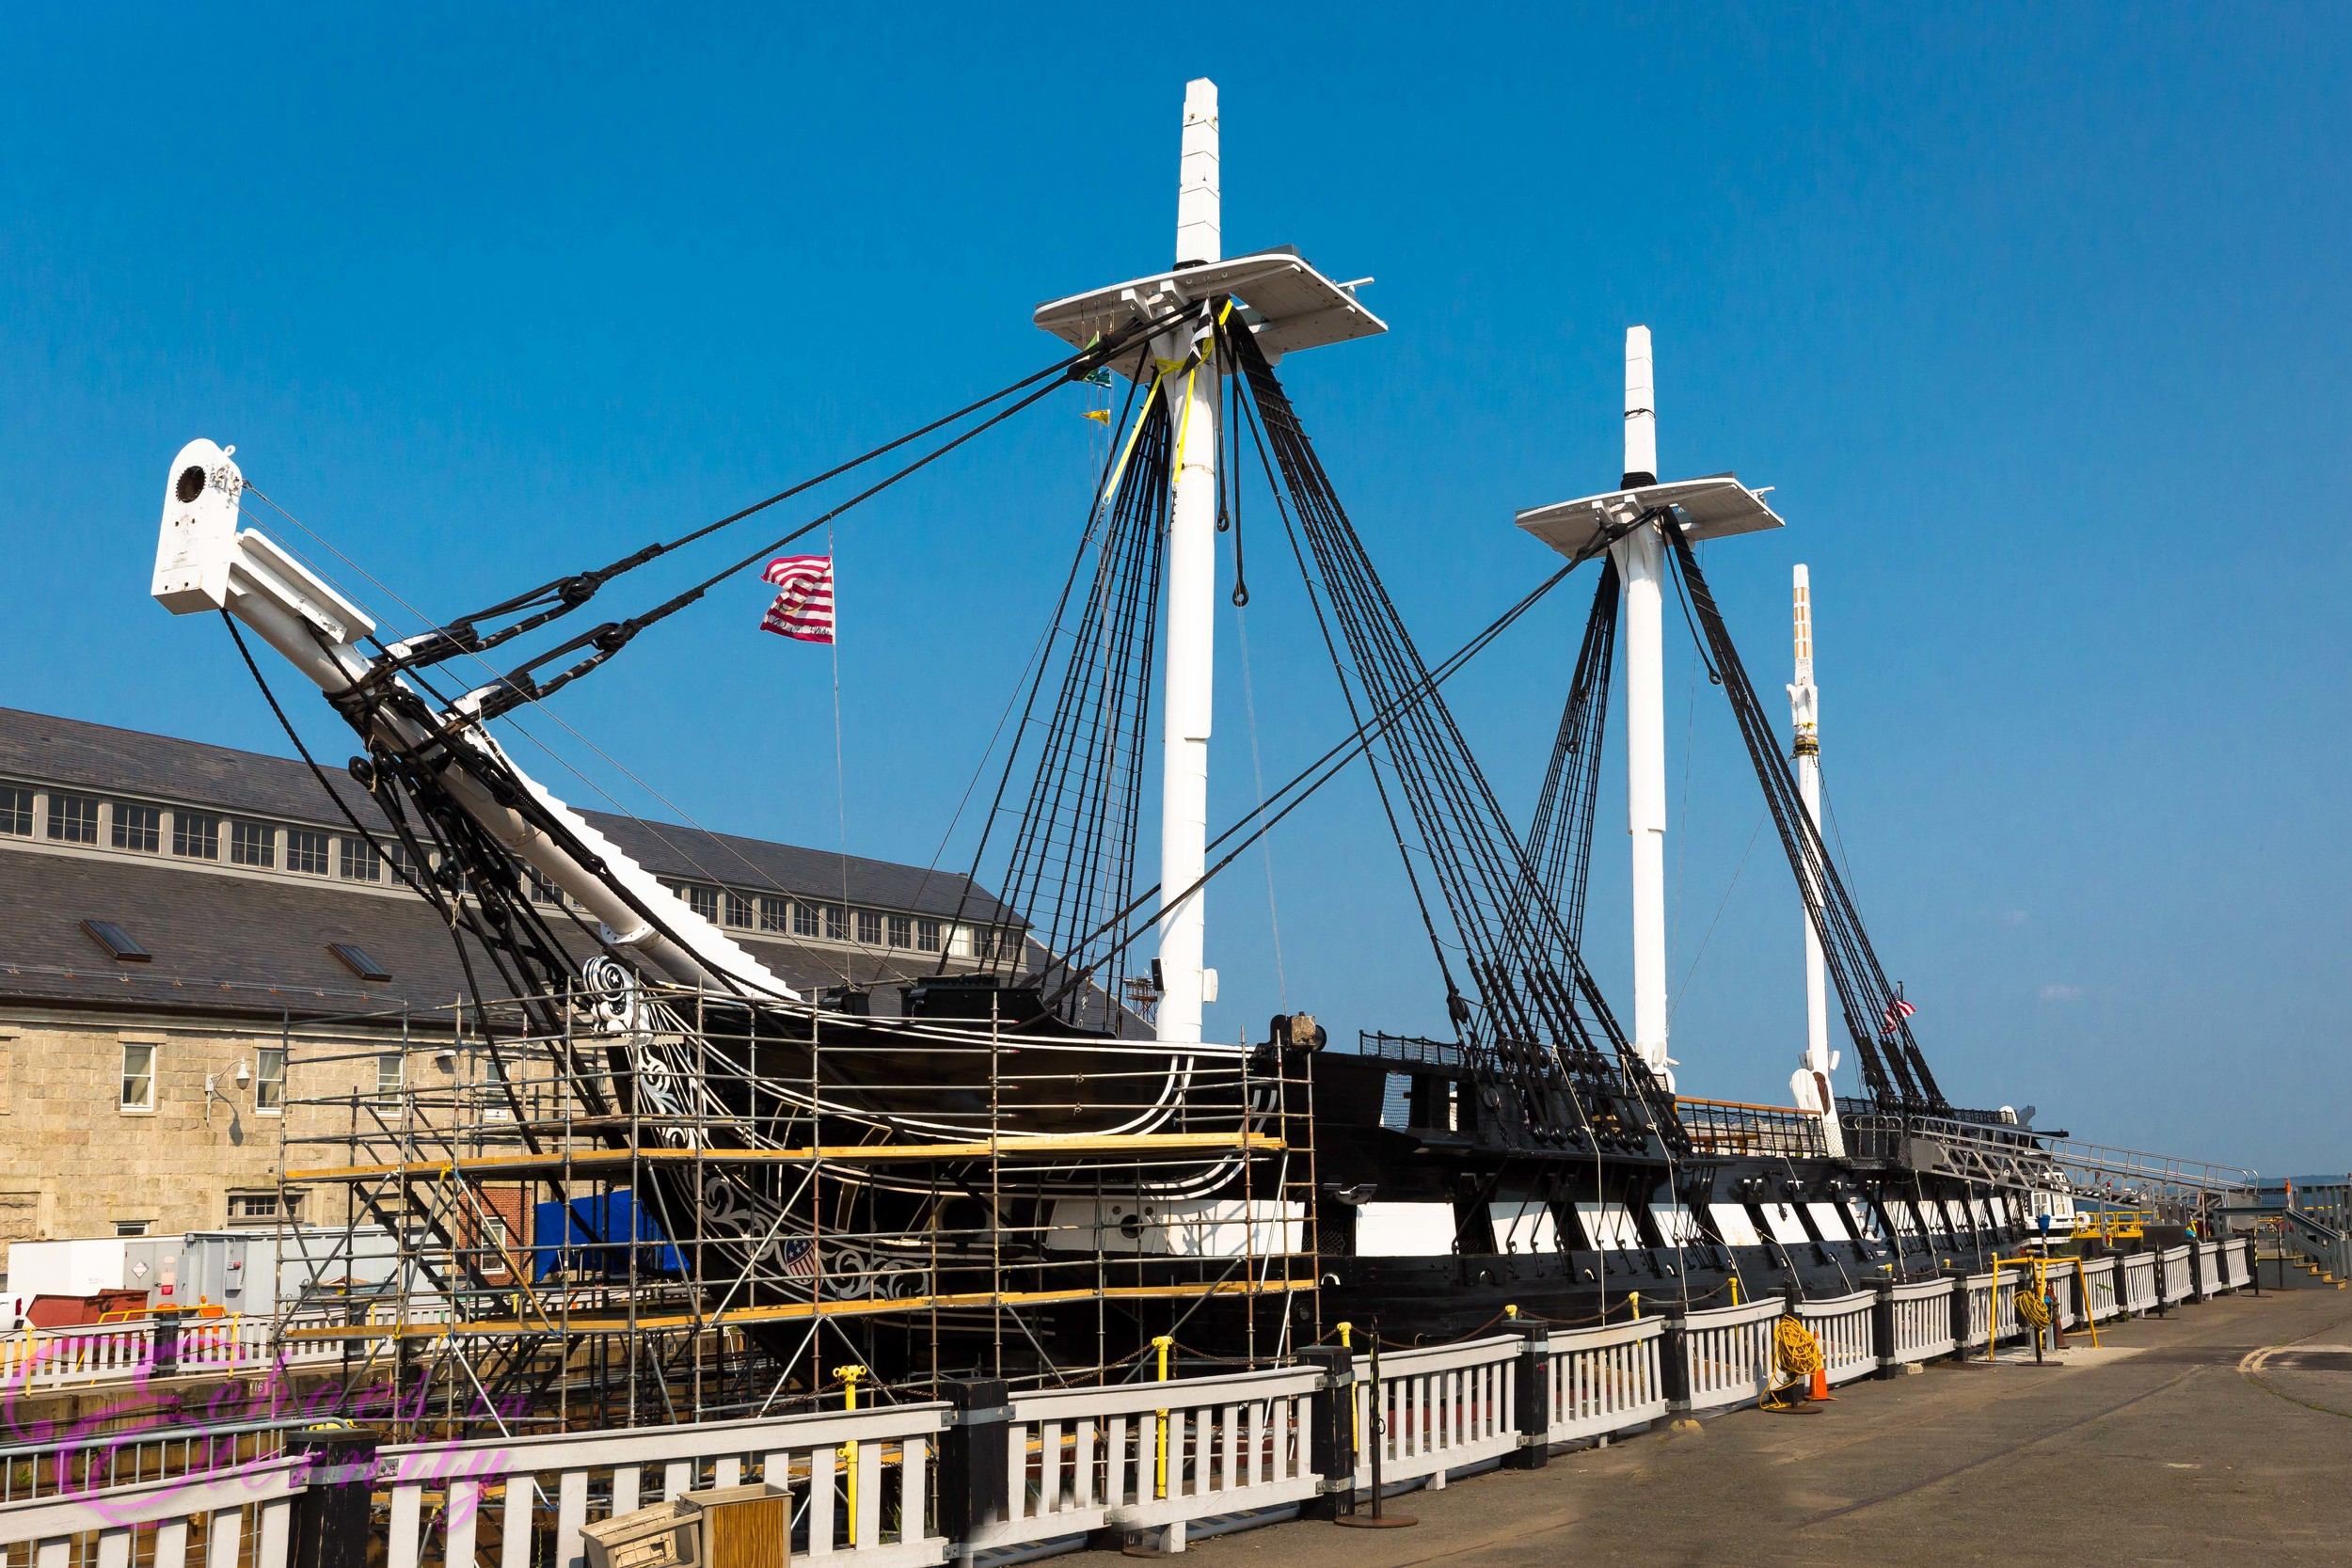 USS Constitution Charlestown Navy Yard Boston Harbor